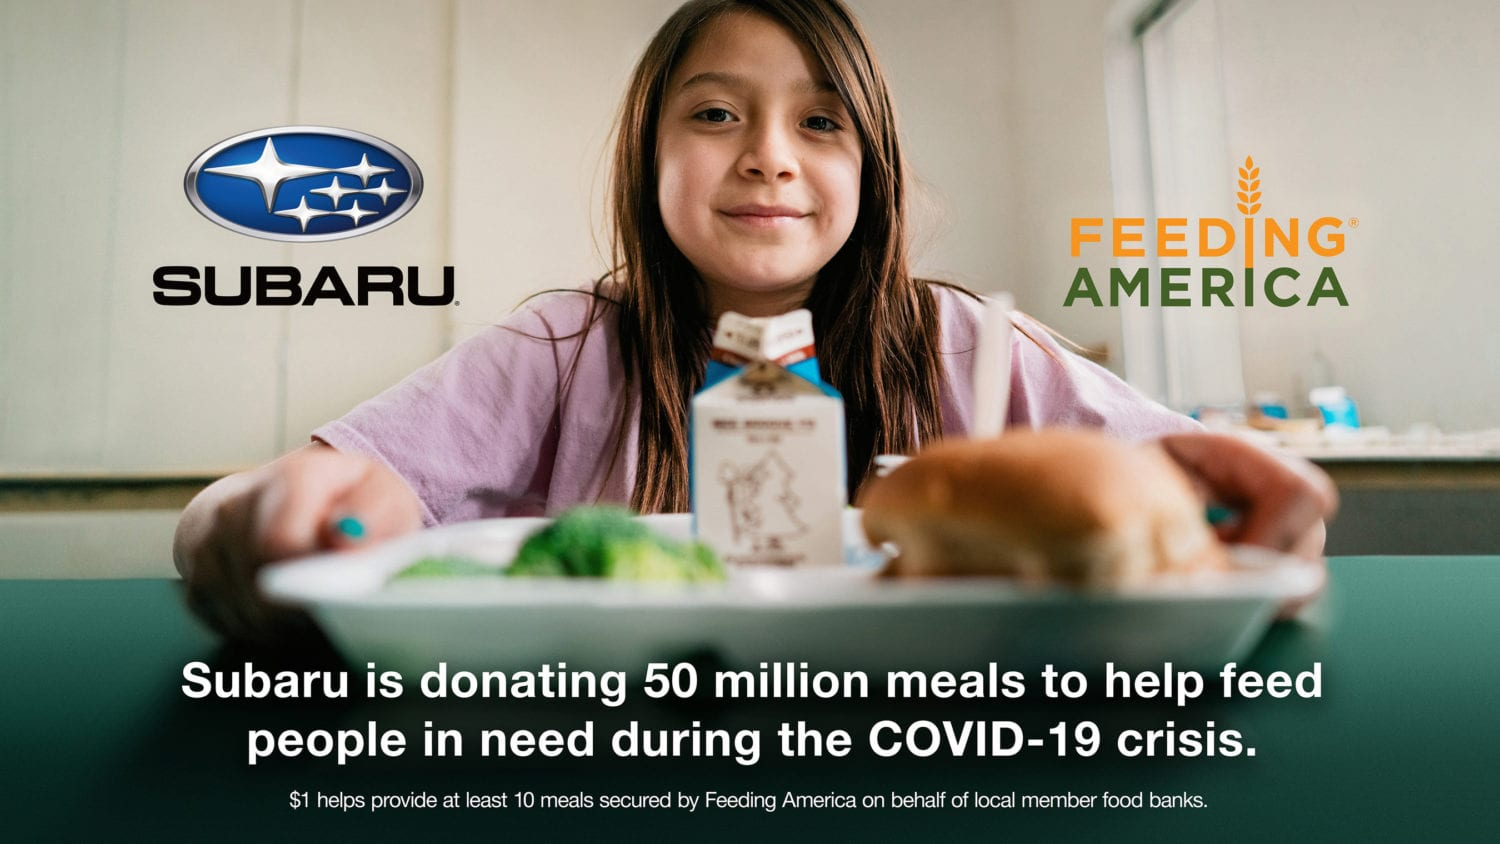 Subaru of America Partners with Feeding America to Help Provide 50 Million Meals to Help Fight Effects of Covid-19 Pandemic